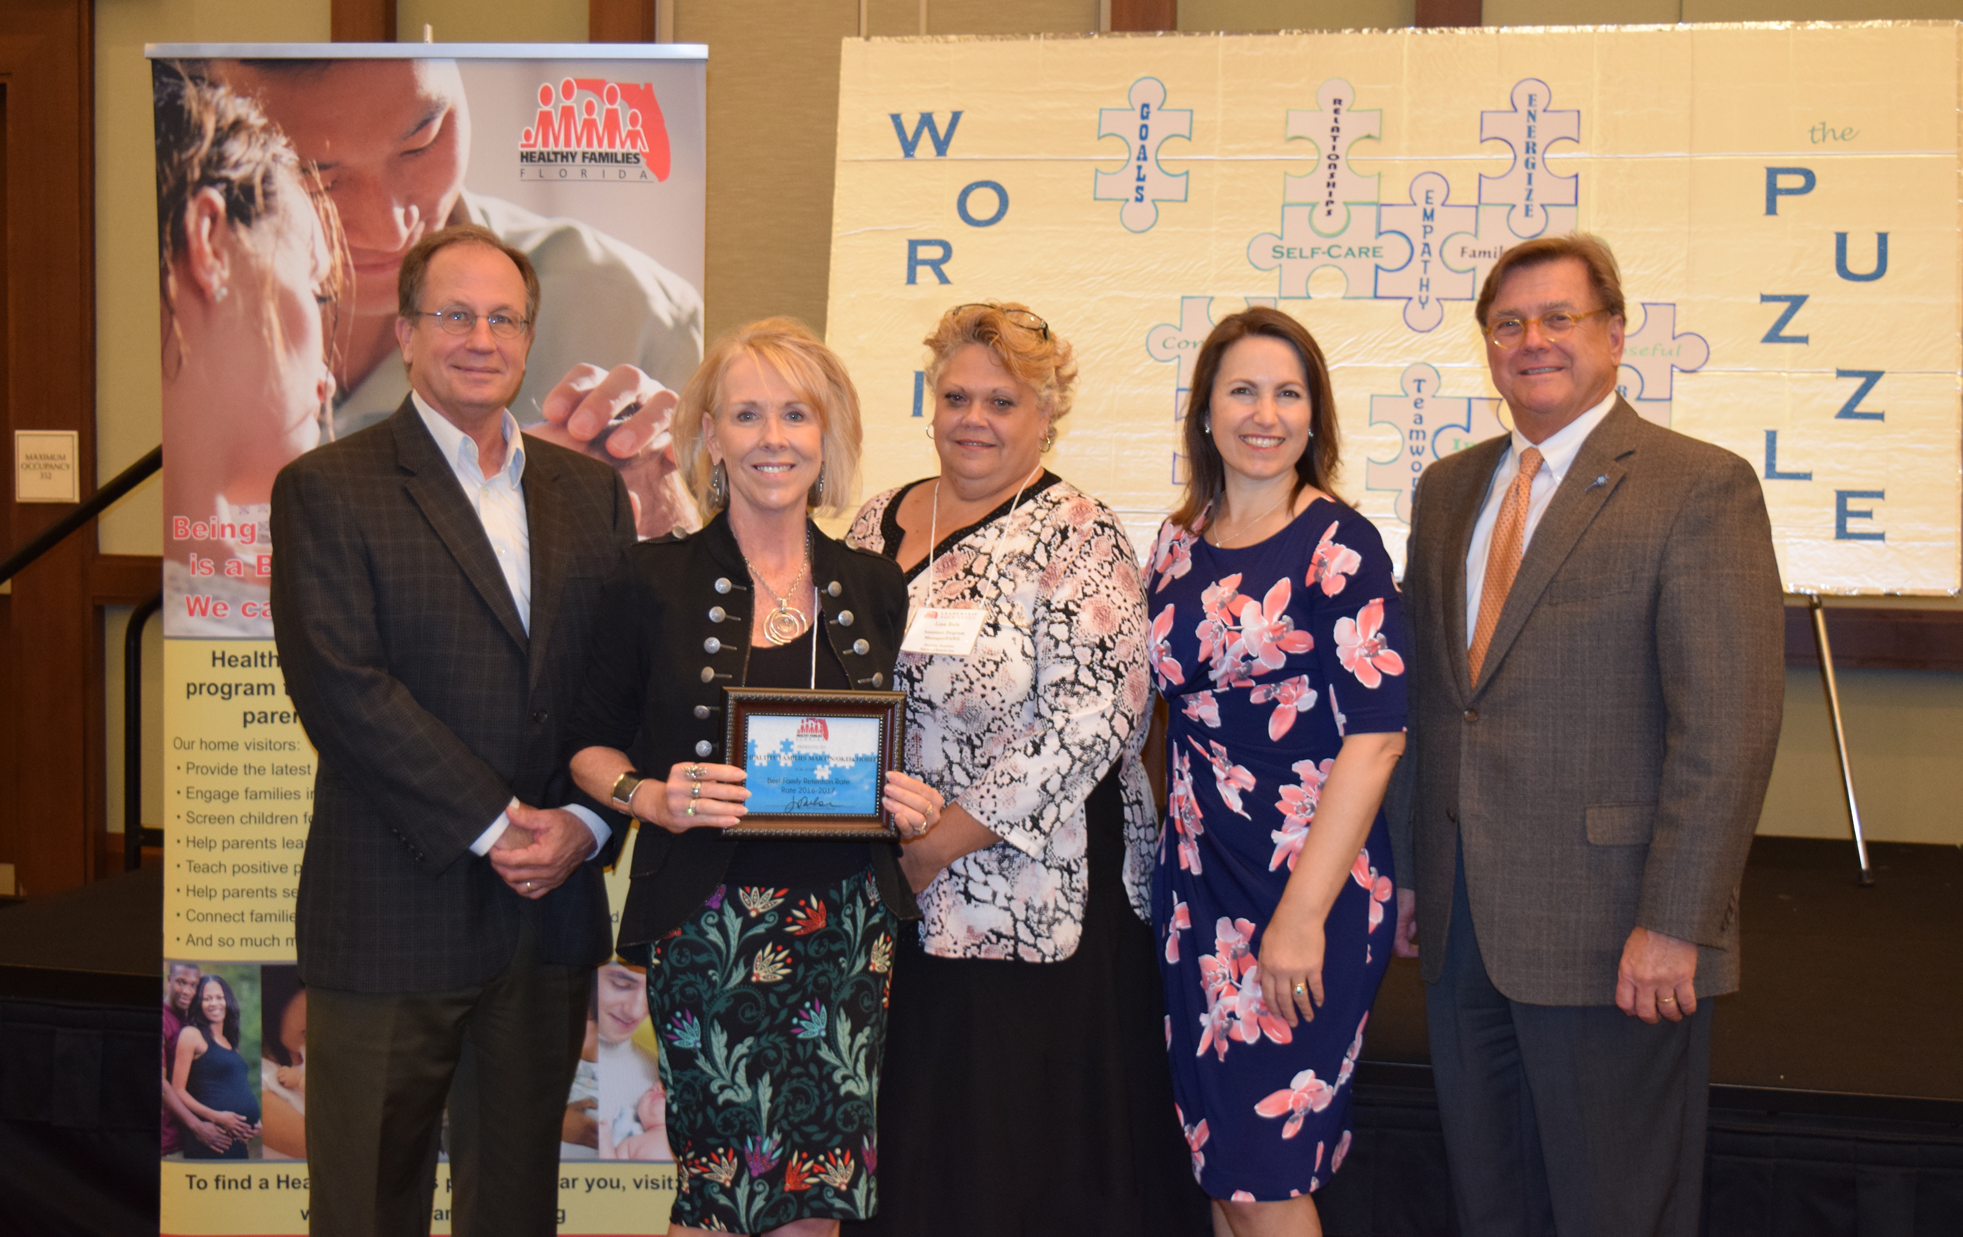 HF Martin-Okeechobee Staff Receive Award